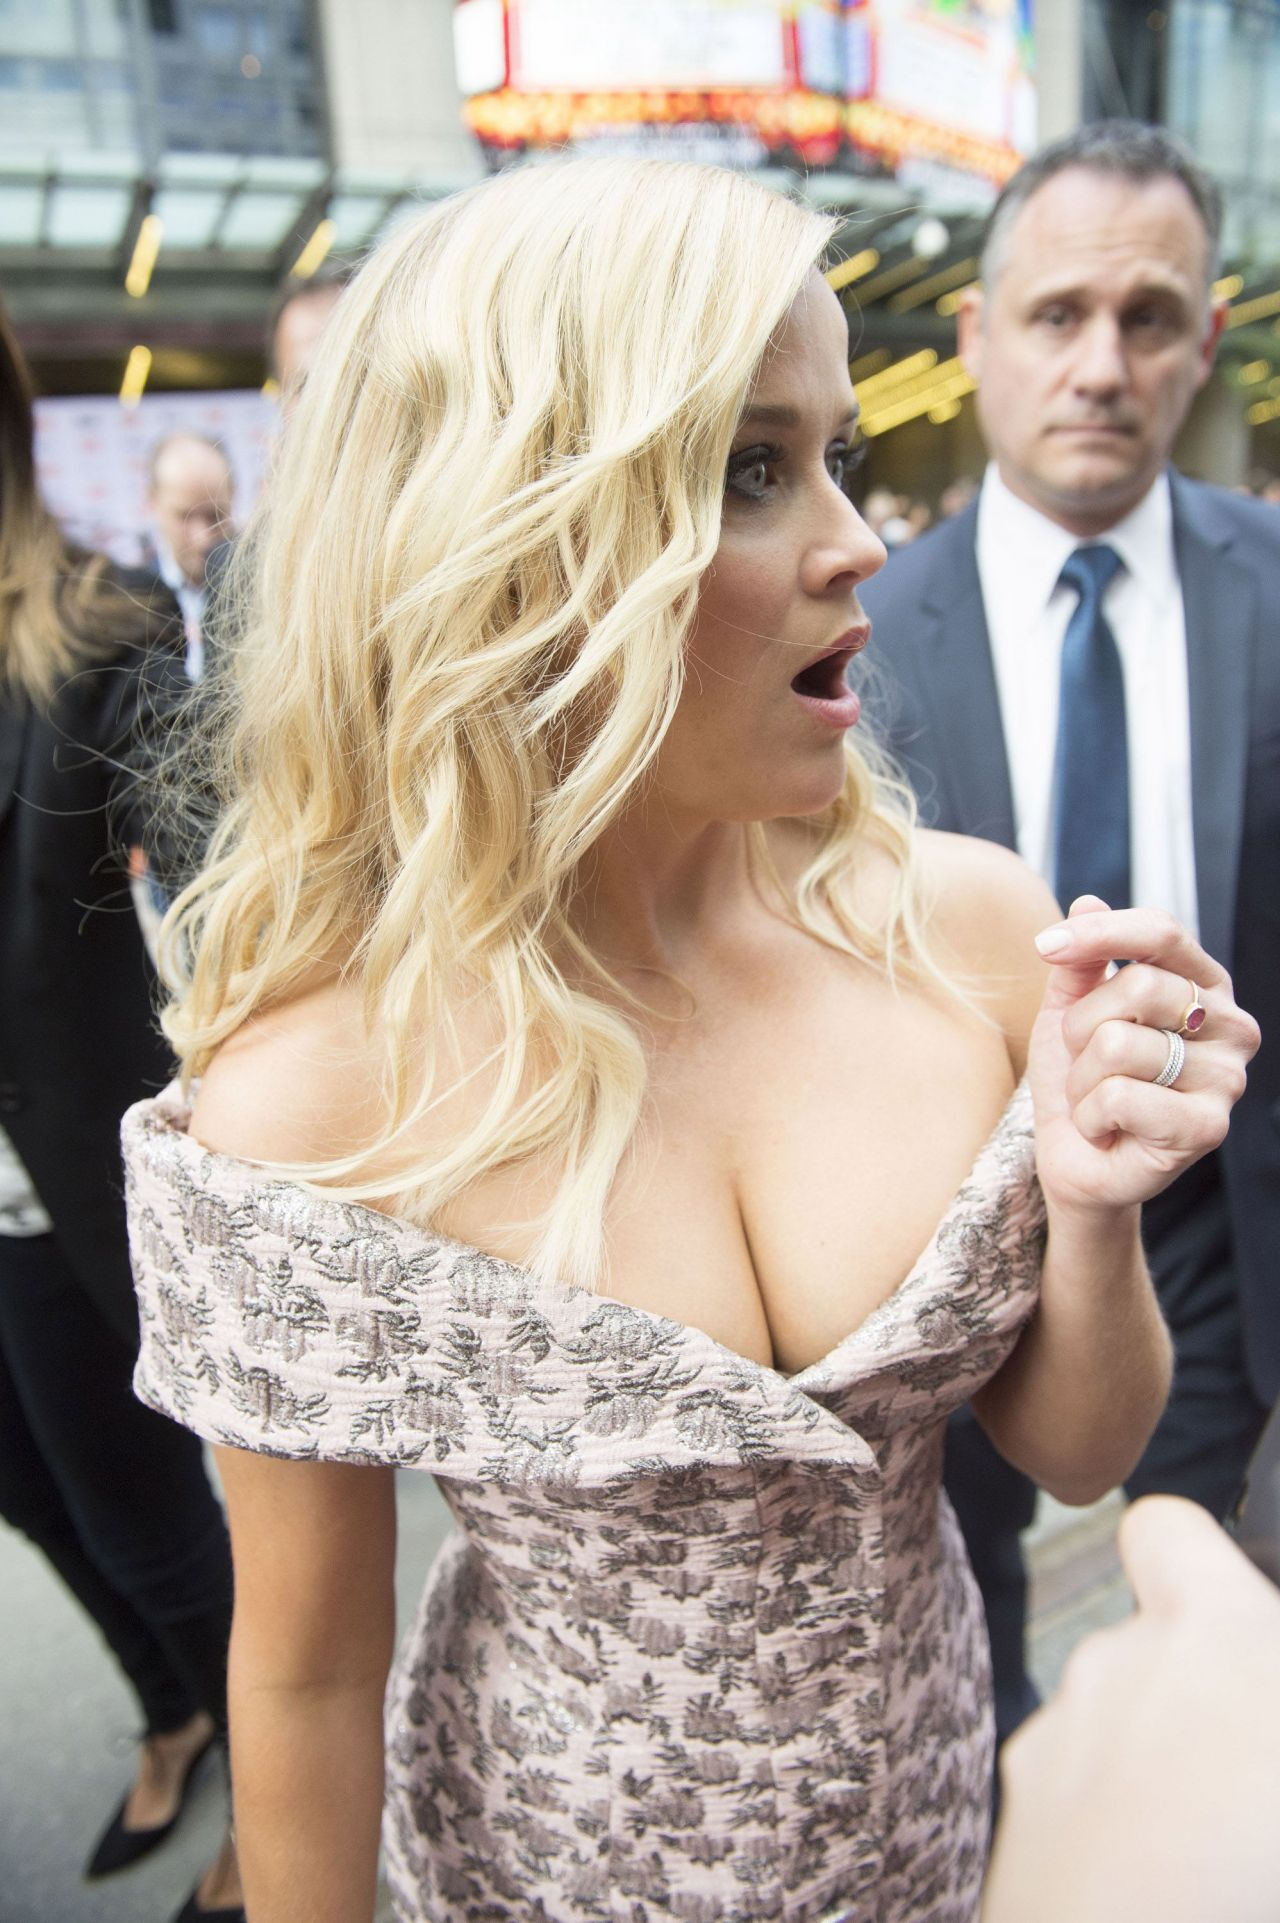 Reese Witherspoon - Sing Premiere At Toronto International Film Festival 9112016-7193